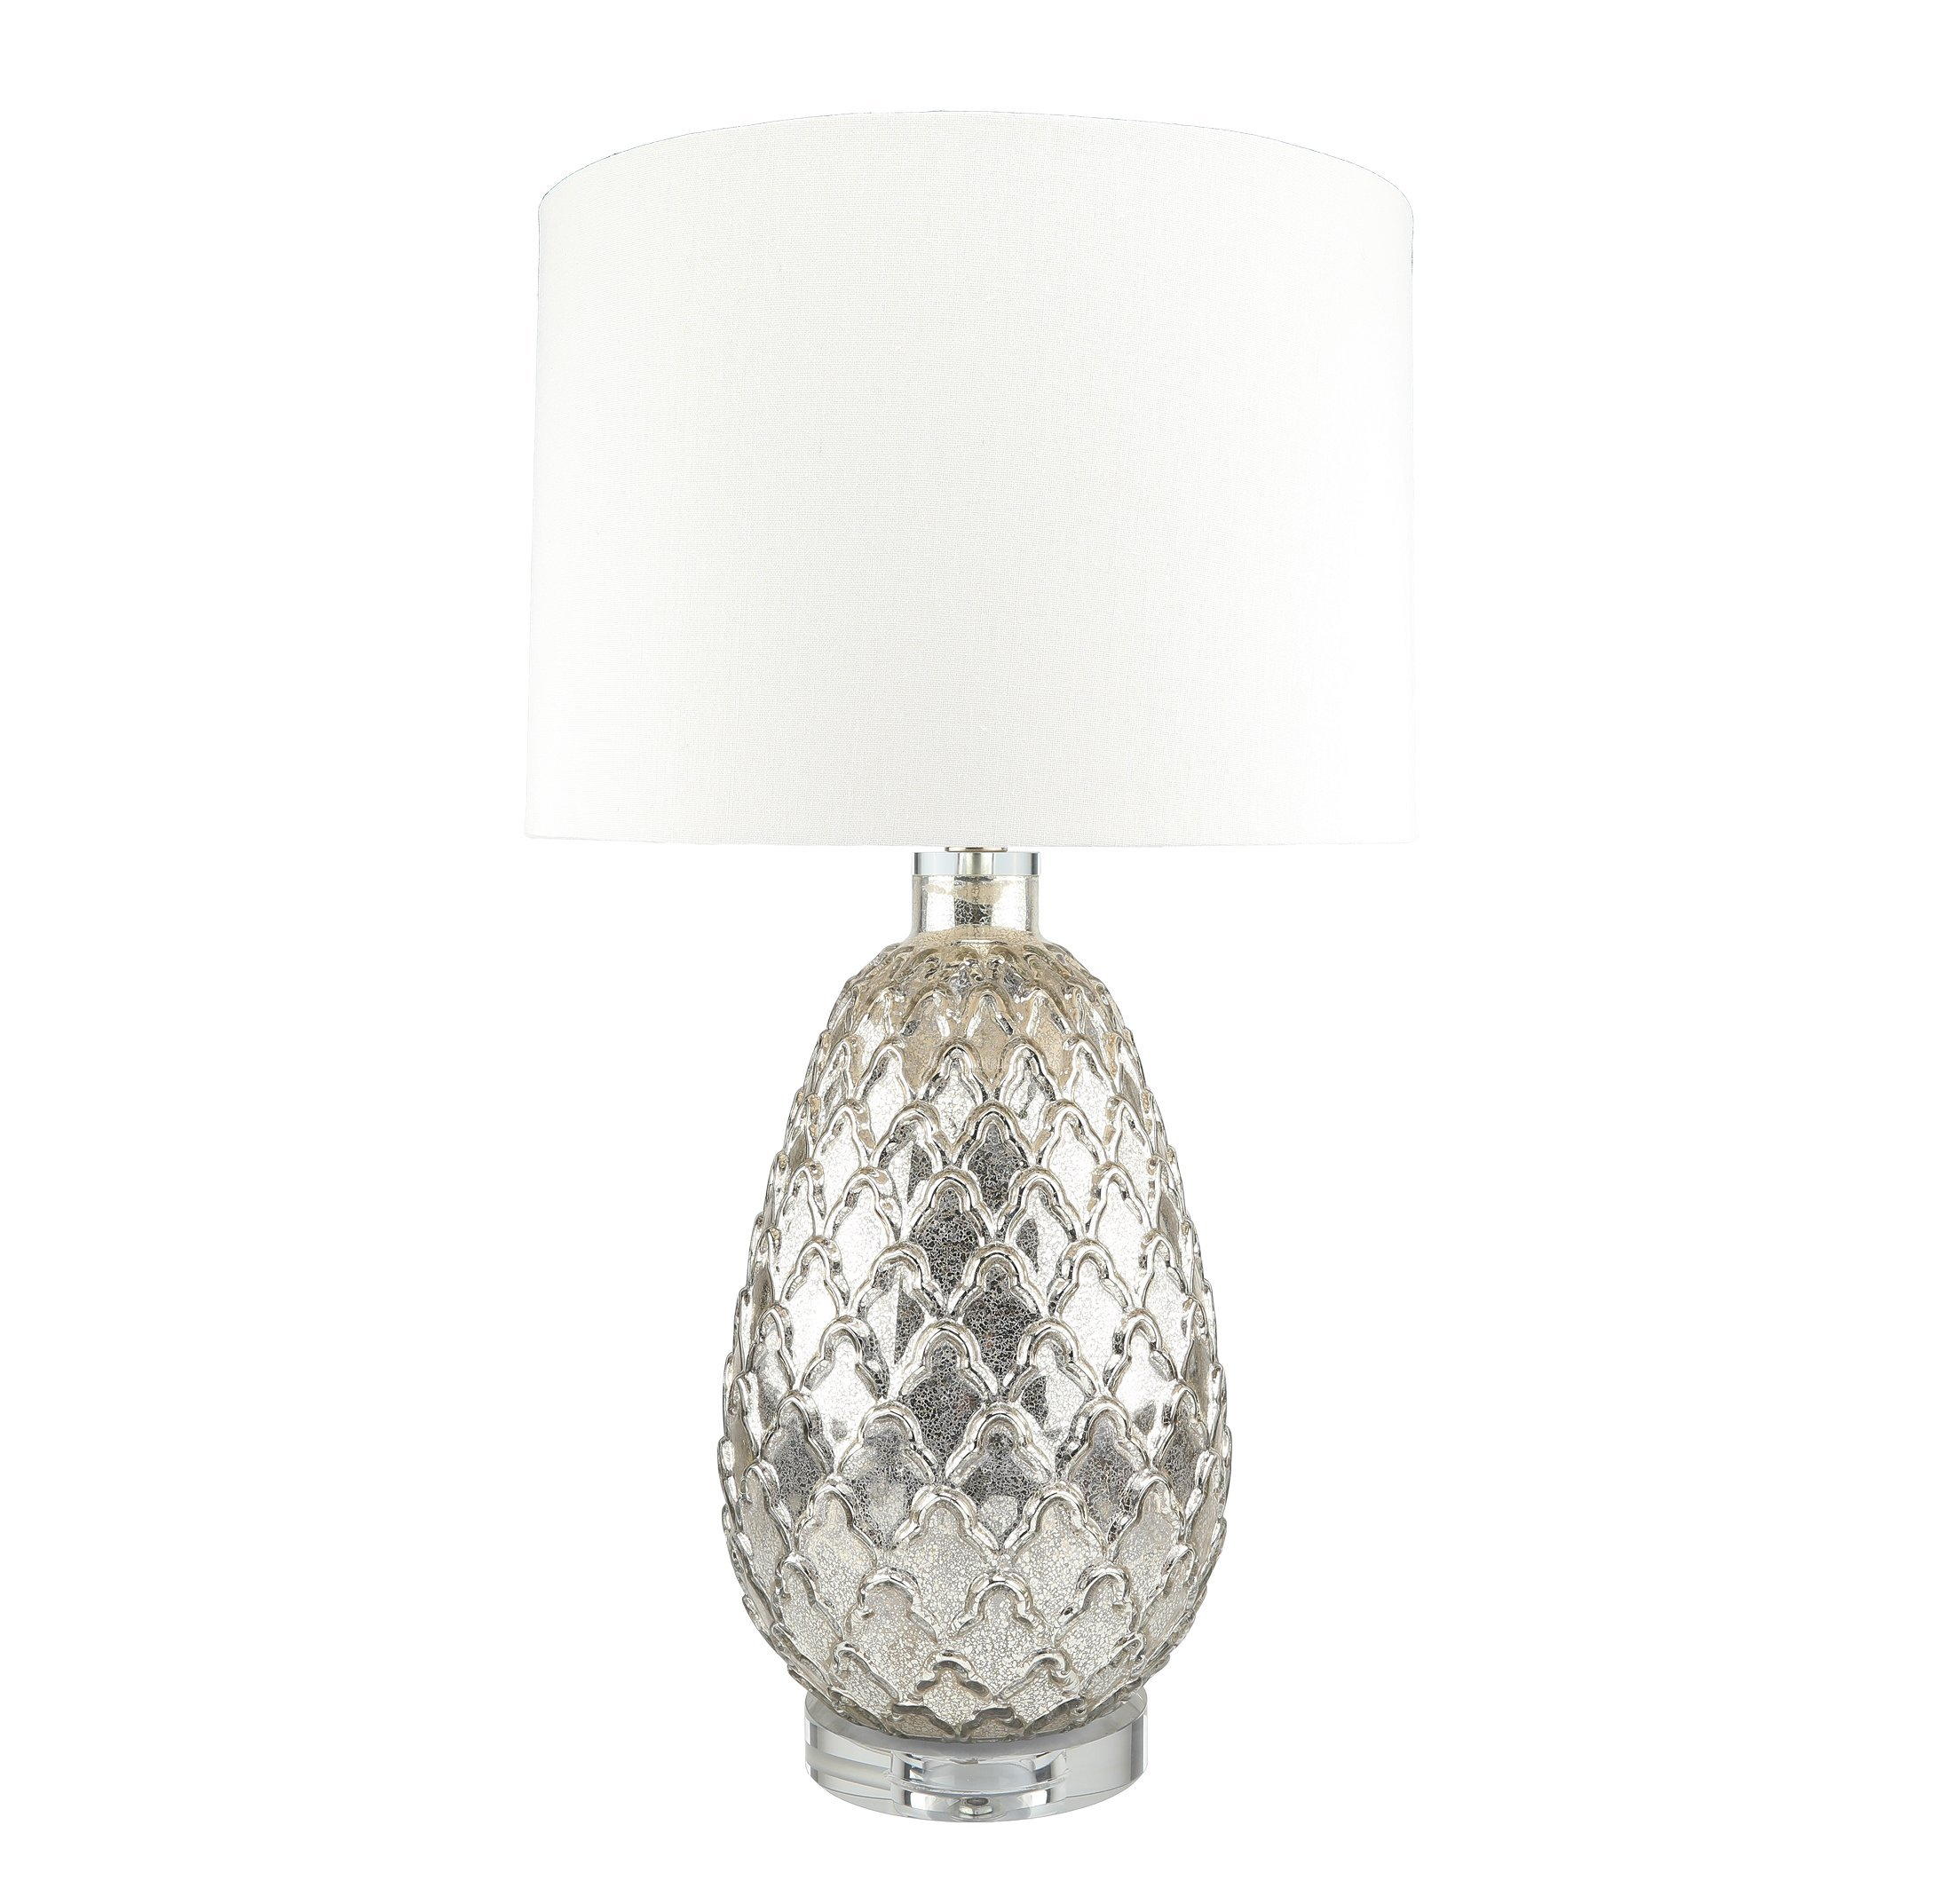 Robie Artisan Mercury Glass Lamp, Pineapple Texured Rustic Lamps for Bedrooms, Living Room - 28'' Height, Clear Crystal Base with White Linen Shade, Harp Construction